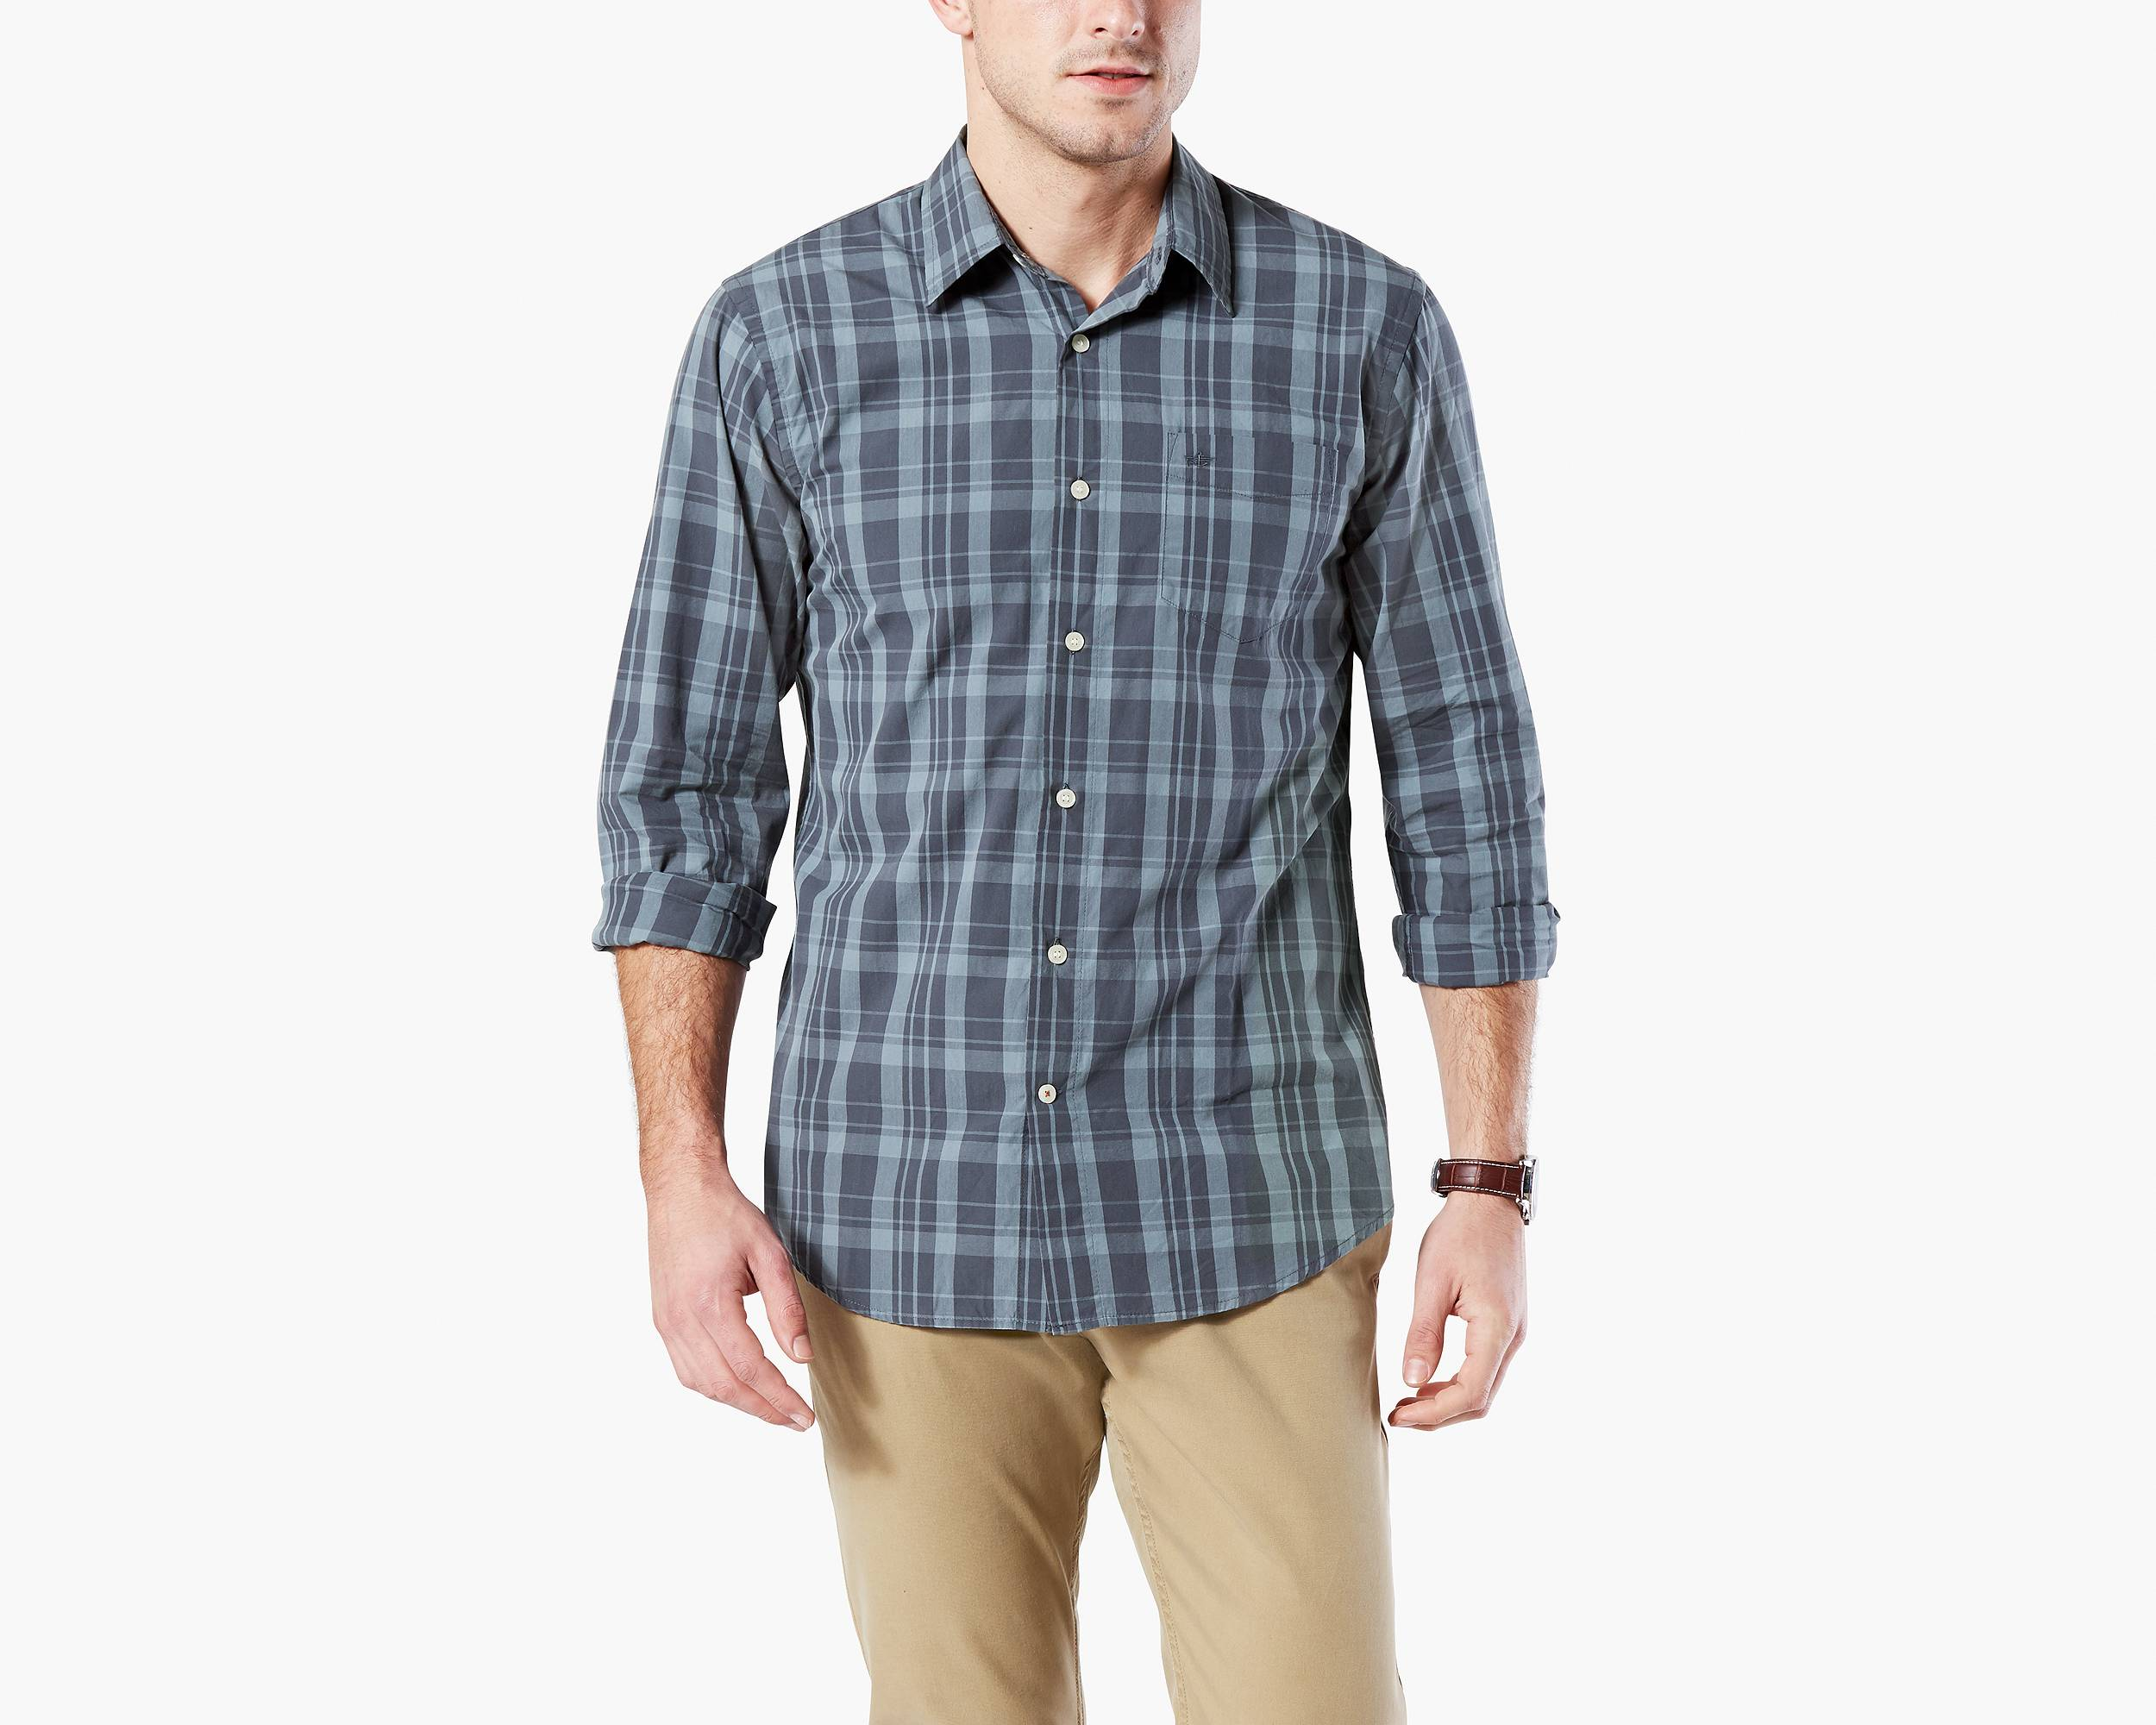 Button down casual mens shirts south park t shirts for Button down t shirts